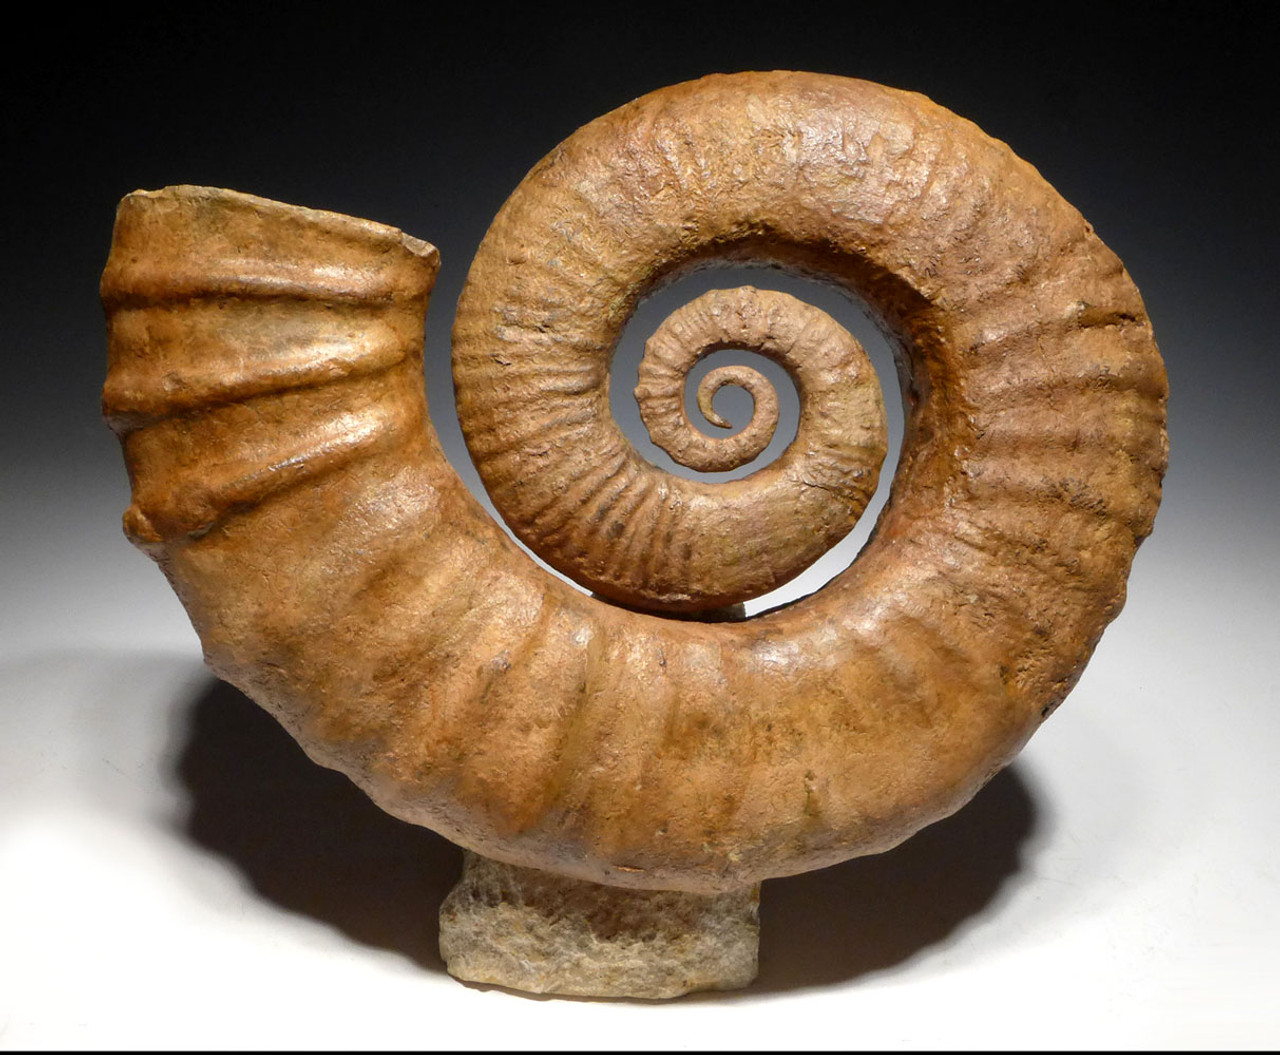 SUPERB INTERIOR DESIGN FOSSIL RARE OPEN COIL HETEROMORPH AMMONITE *AMX384